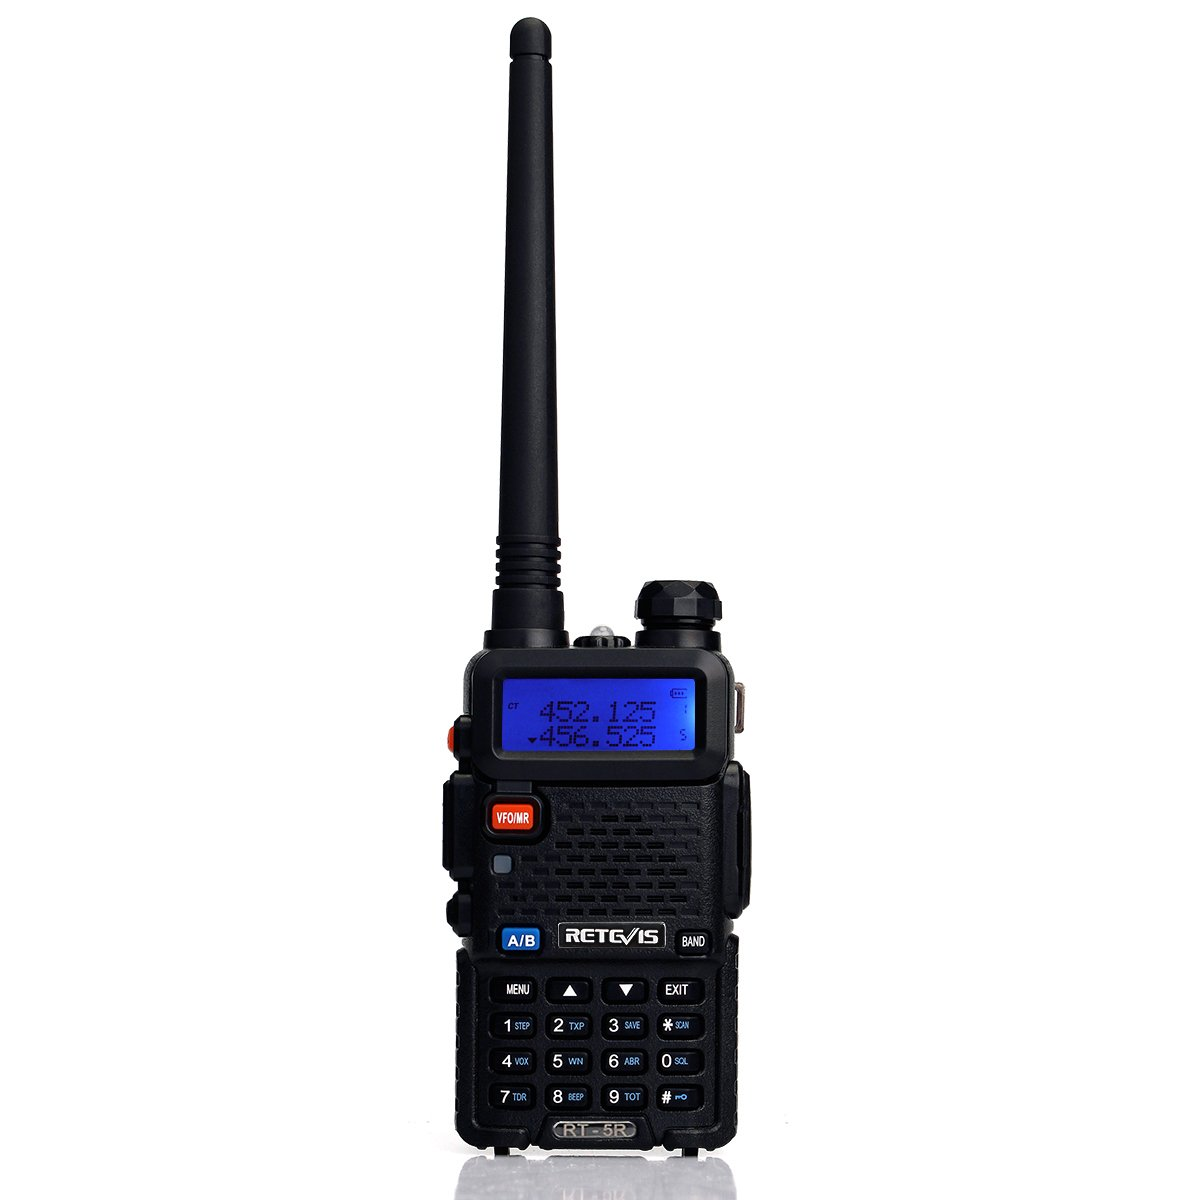 Retevis RT-5R 2 Way Radio 5W 128CH UHF/VHF 400-520MHz/136-174MHZ Walkie Talkies (6 Pack) and Programming Cable by Retevis (Image #7)